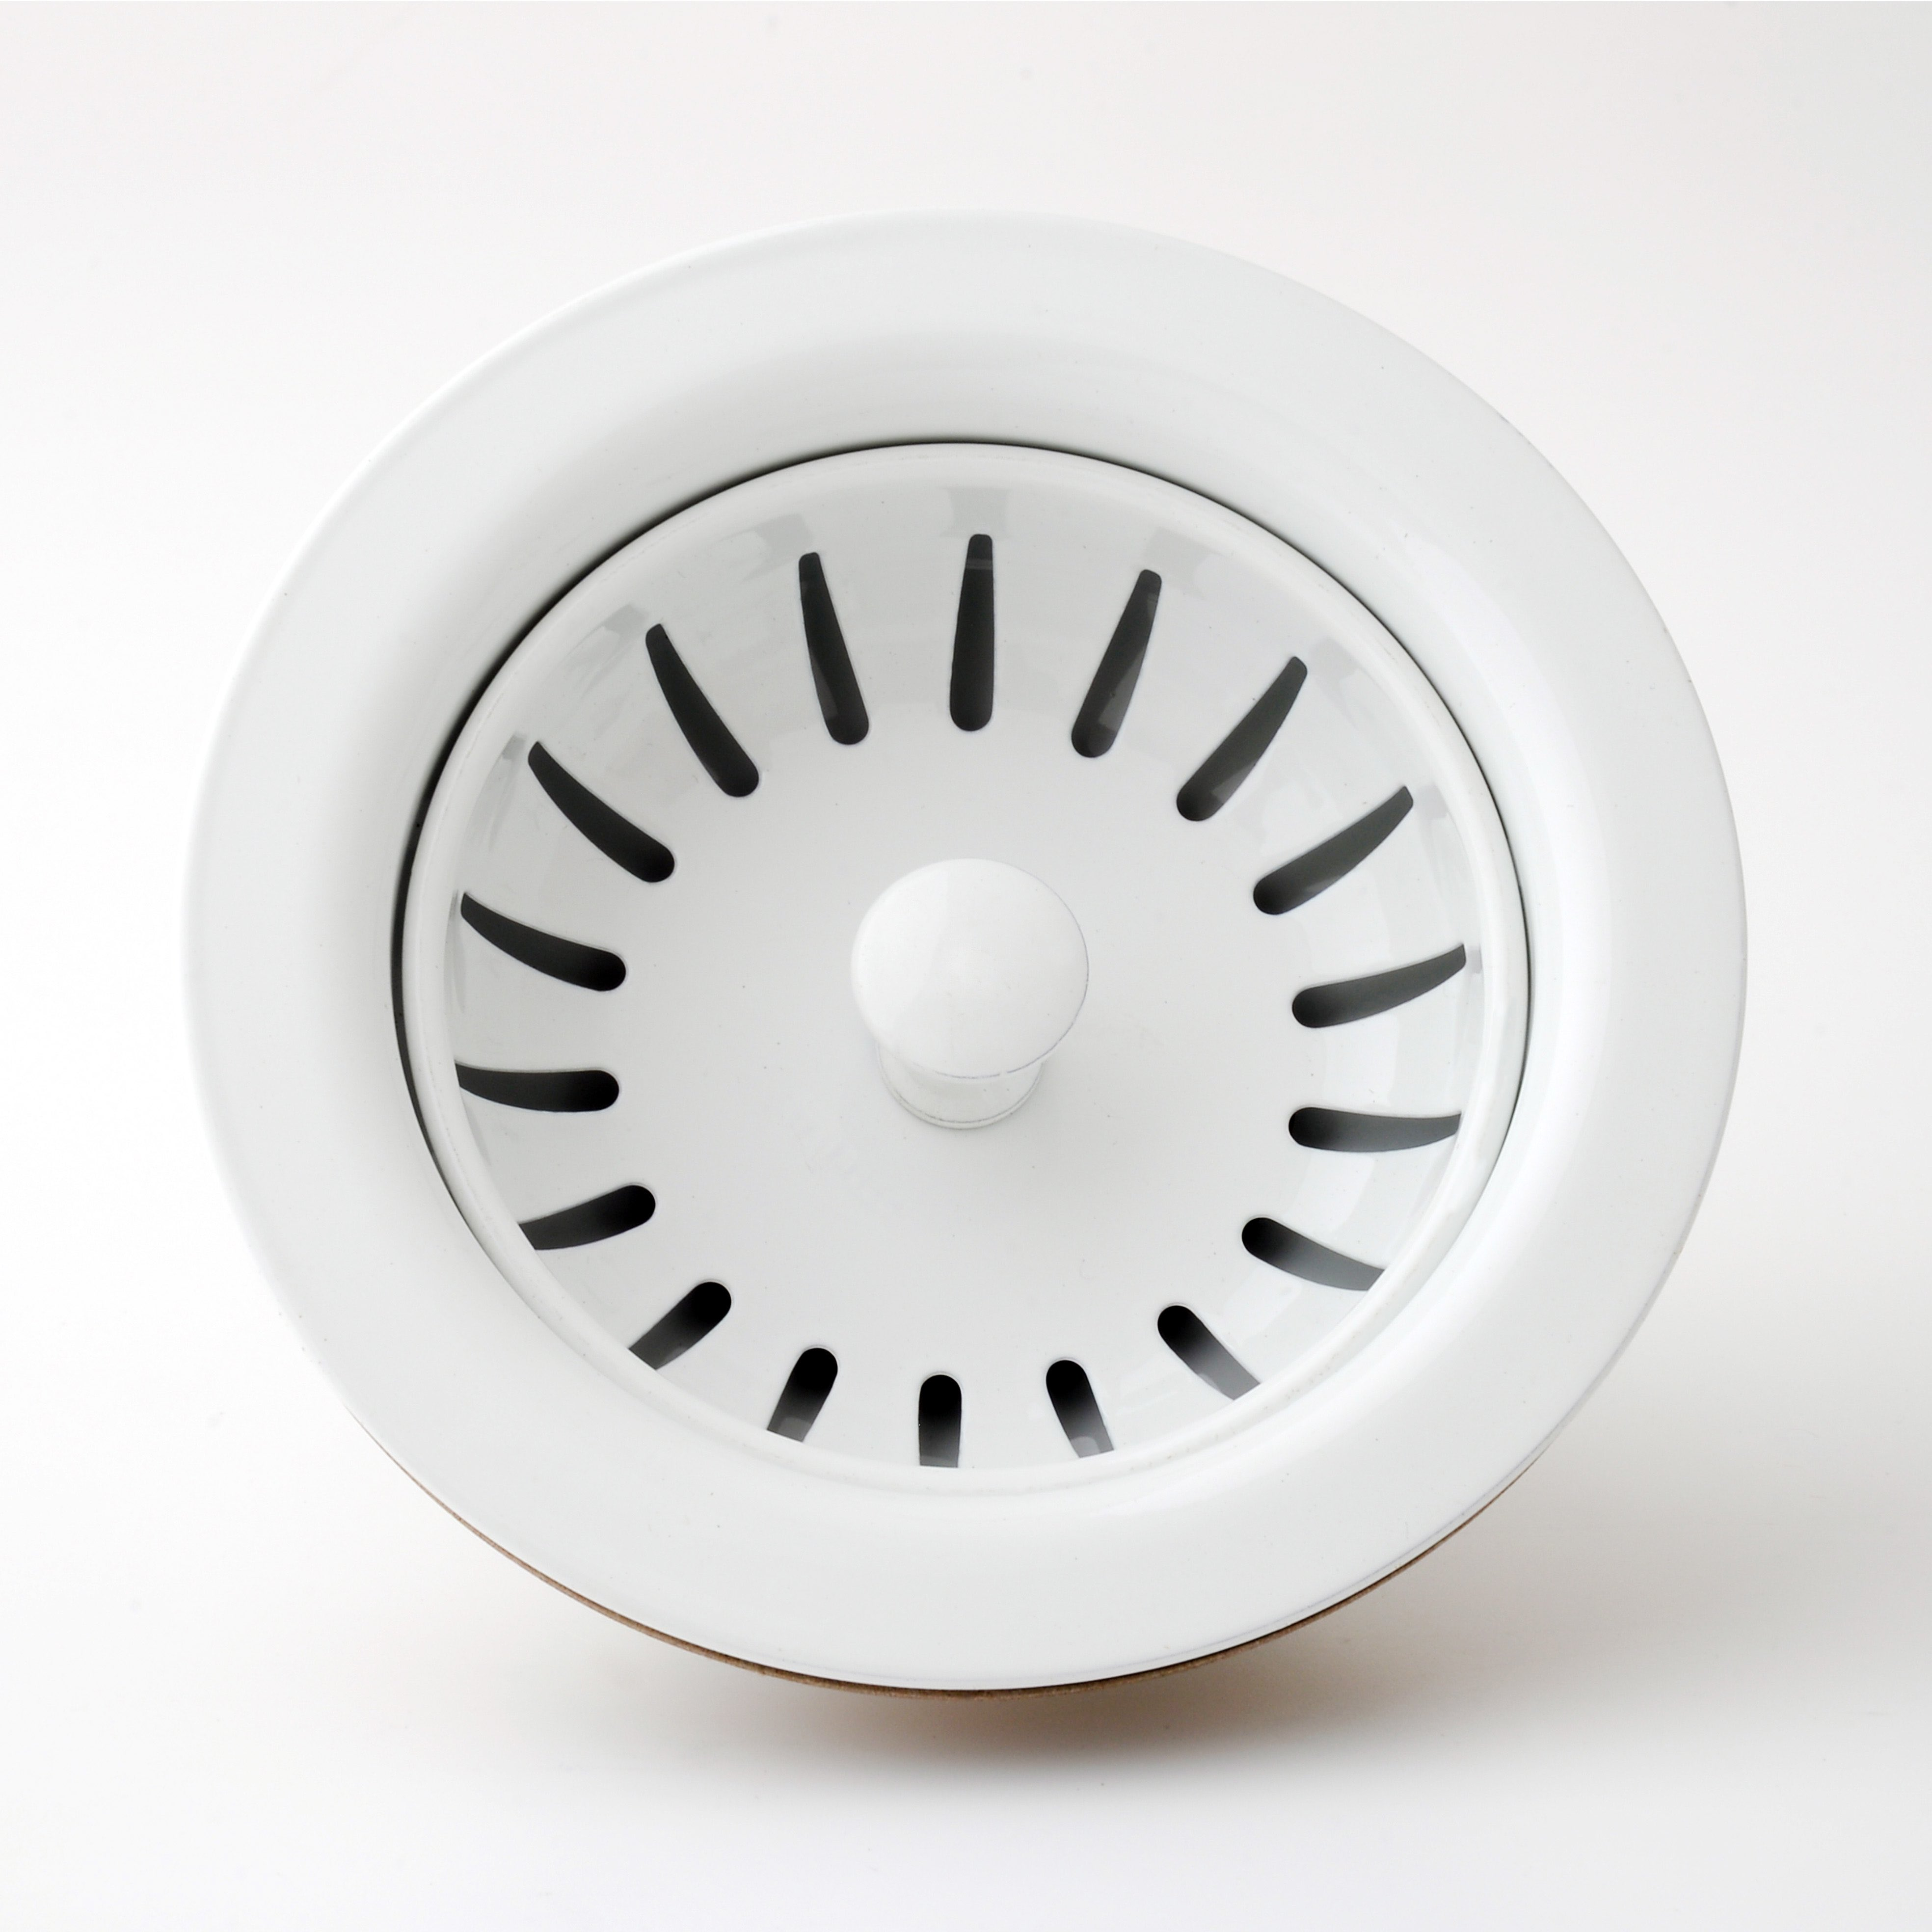 Picture of: Standard 3 1 2 White Kitchen Sink Drain Stopper Sink Basket Taiwantrade Com